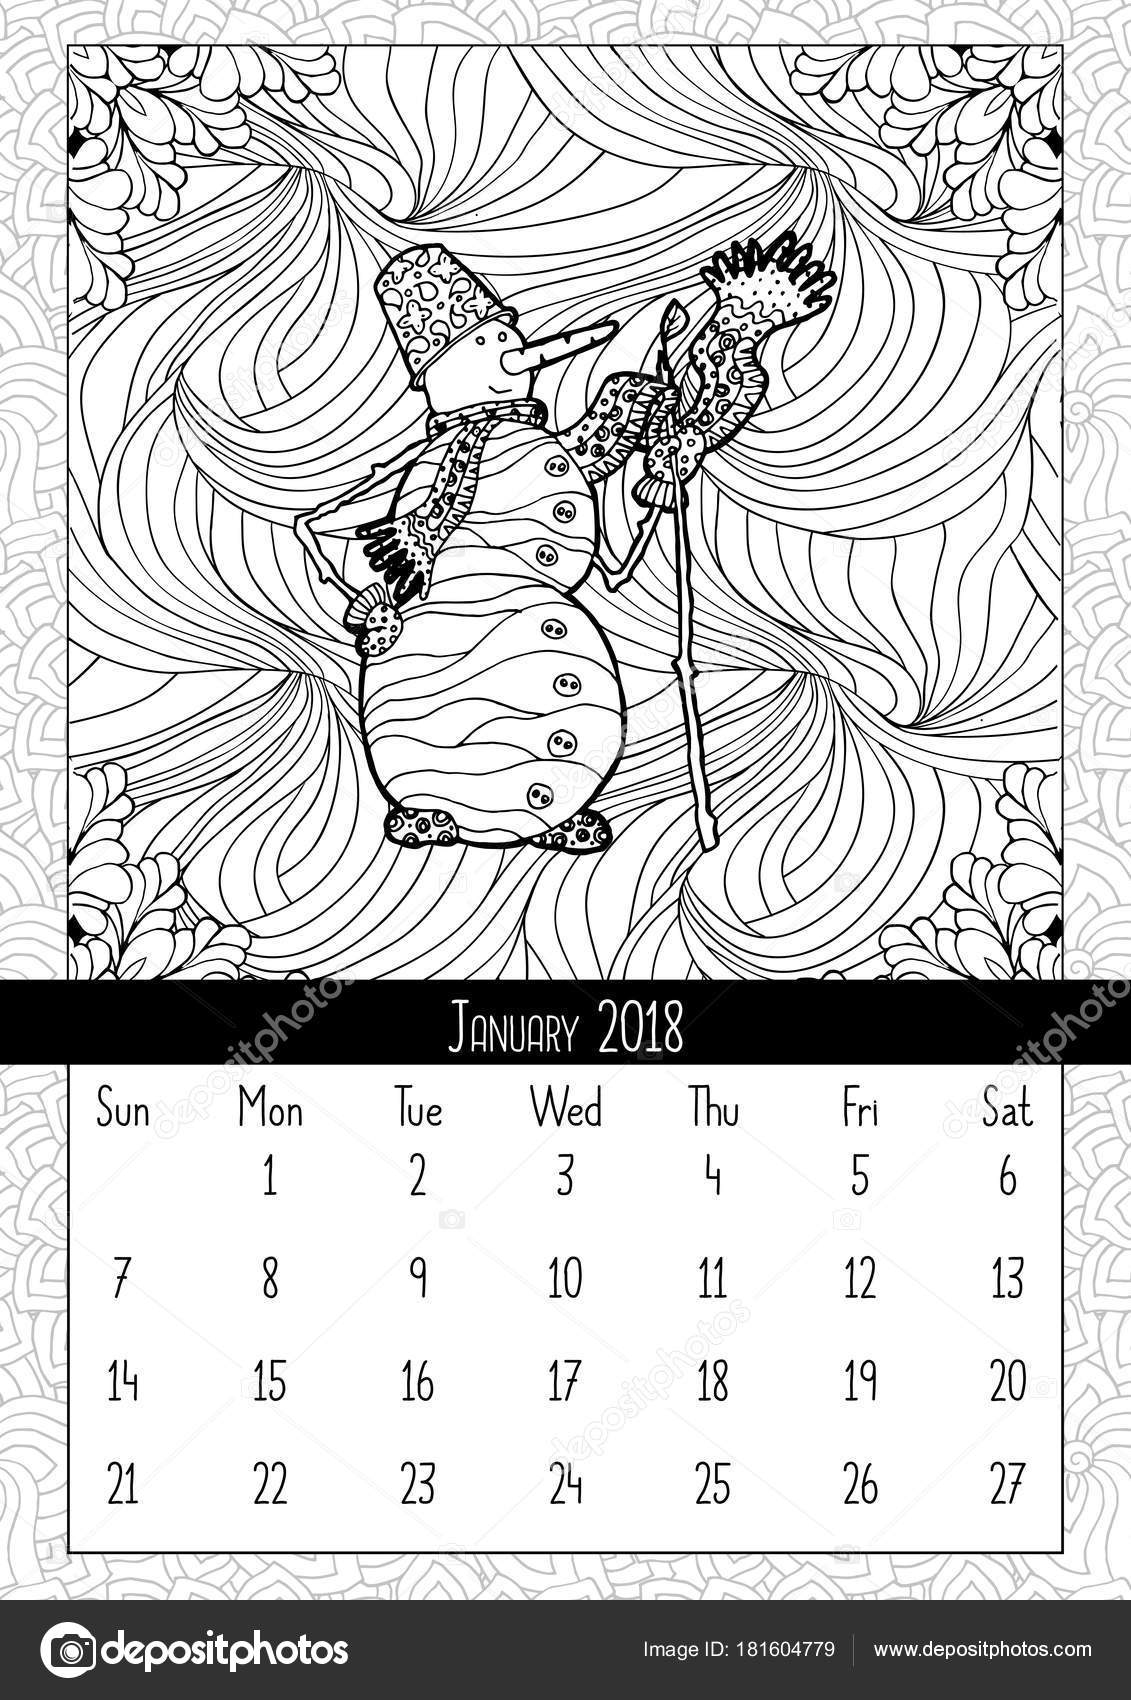 snowman doodle style calendar january 2018 coloring book poster